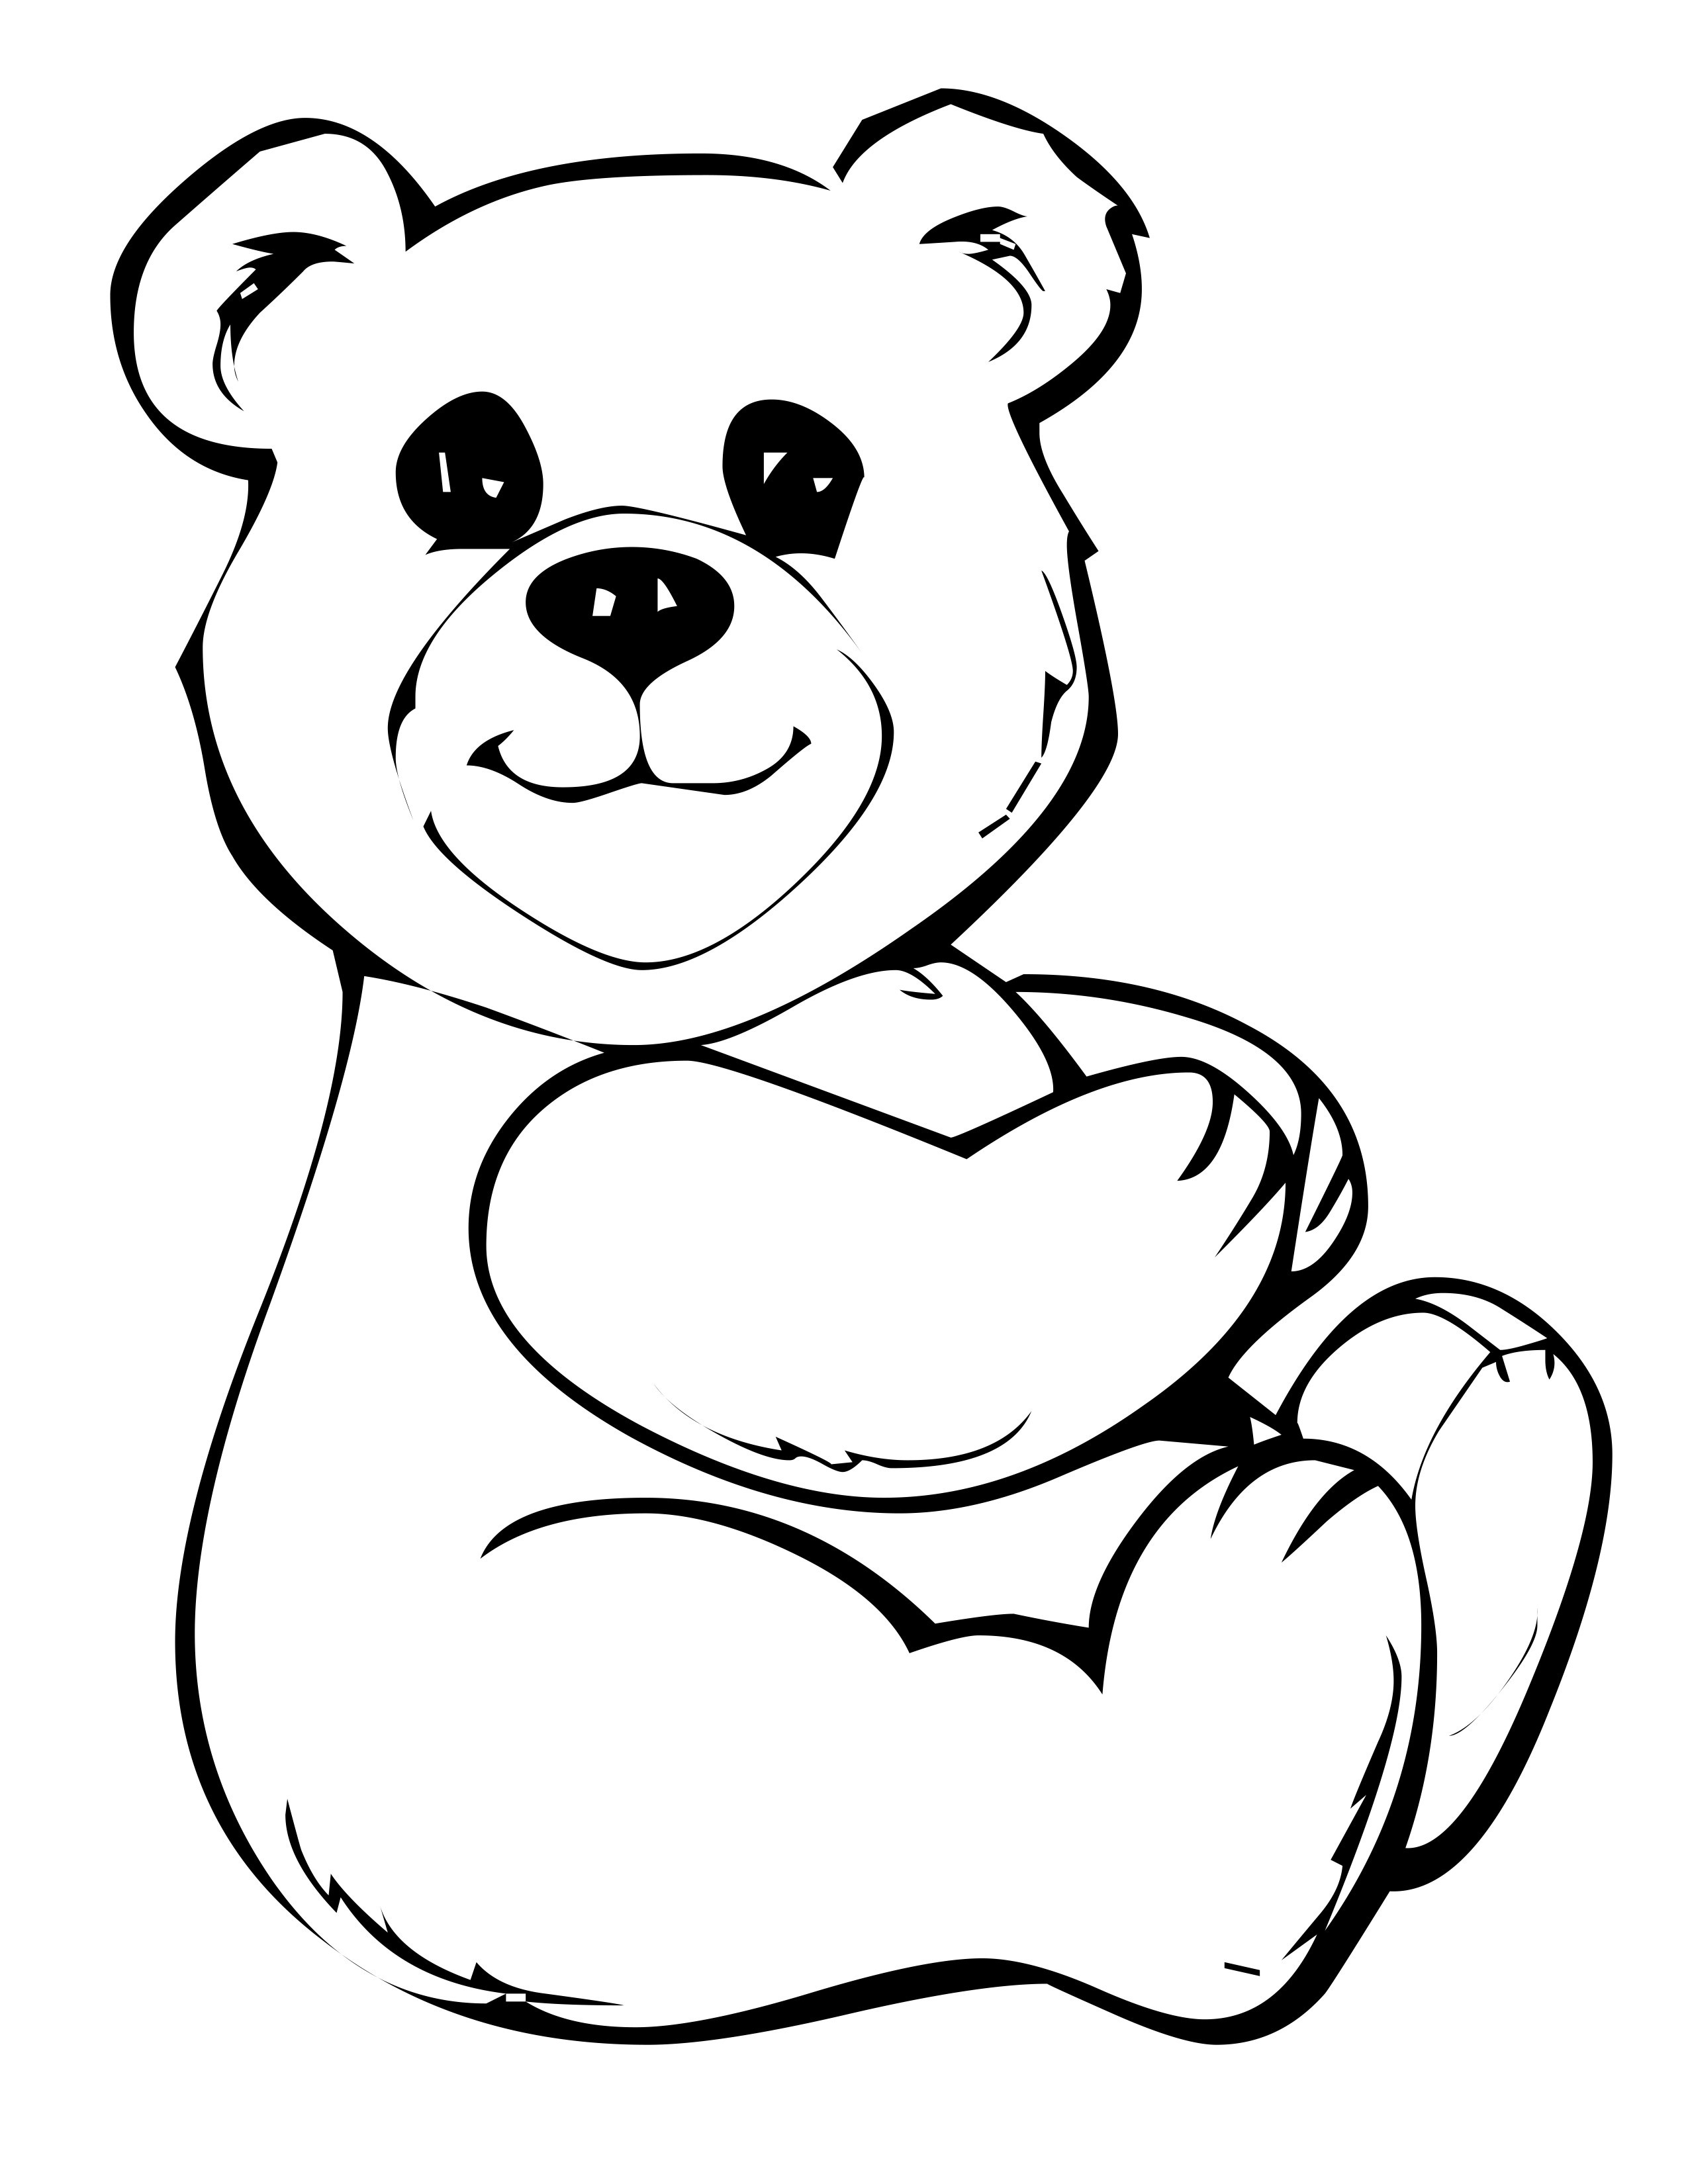 coloring pages of bears to print free bear coloring pages pages print bears of to coloring